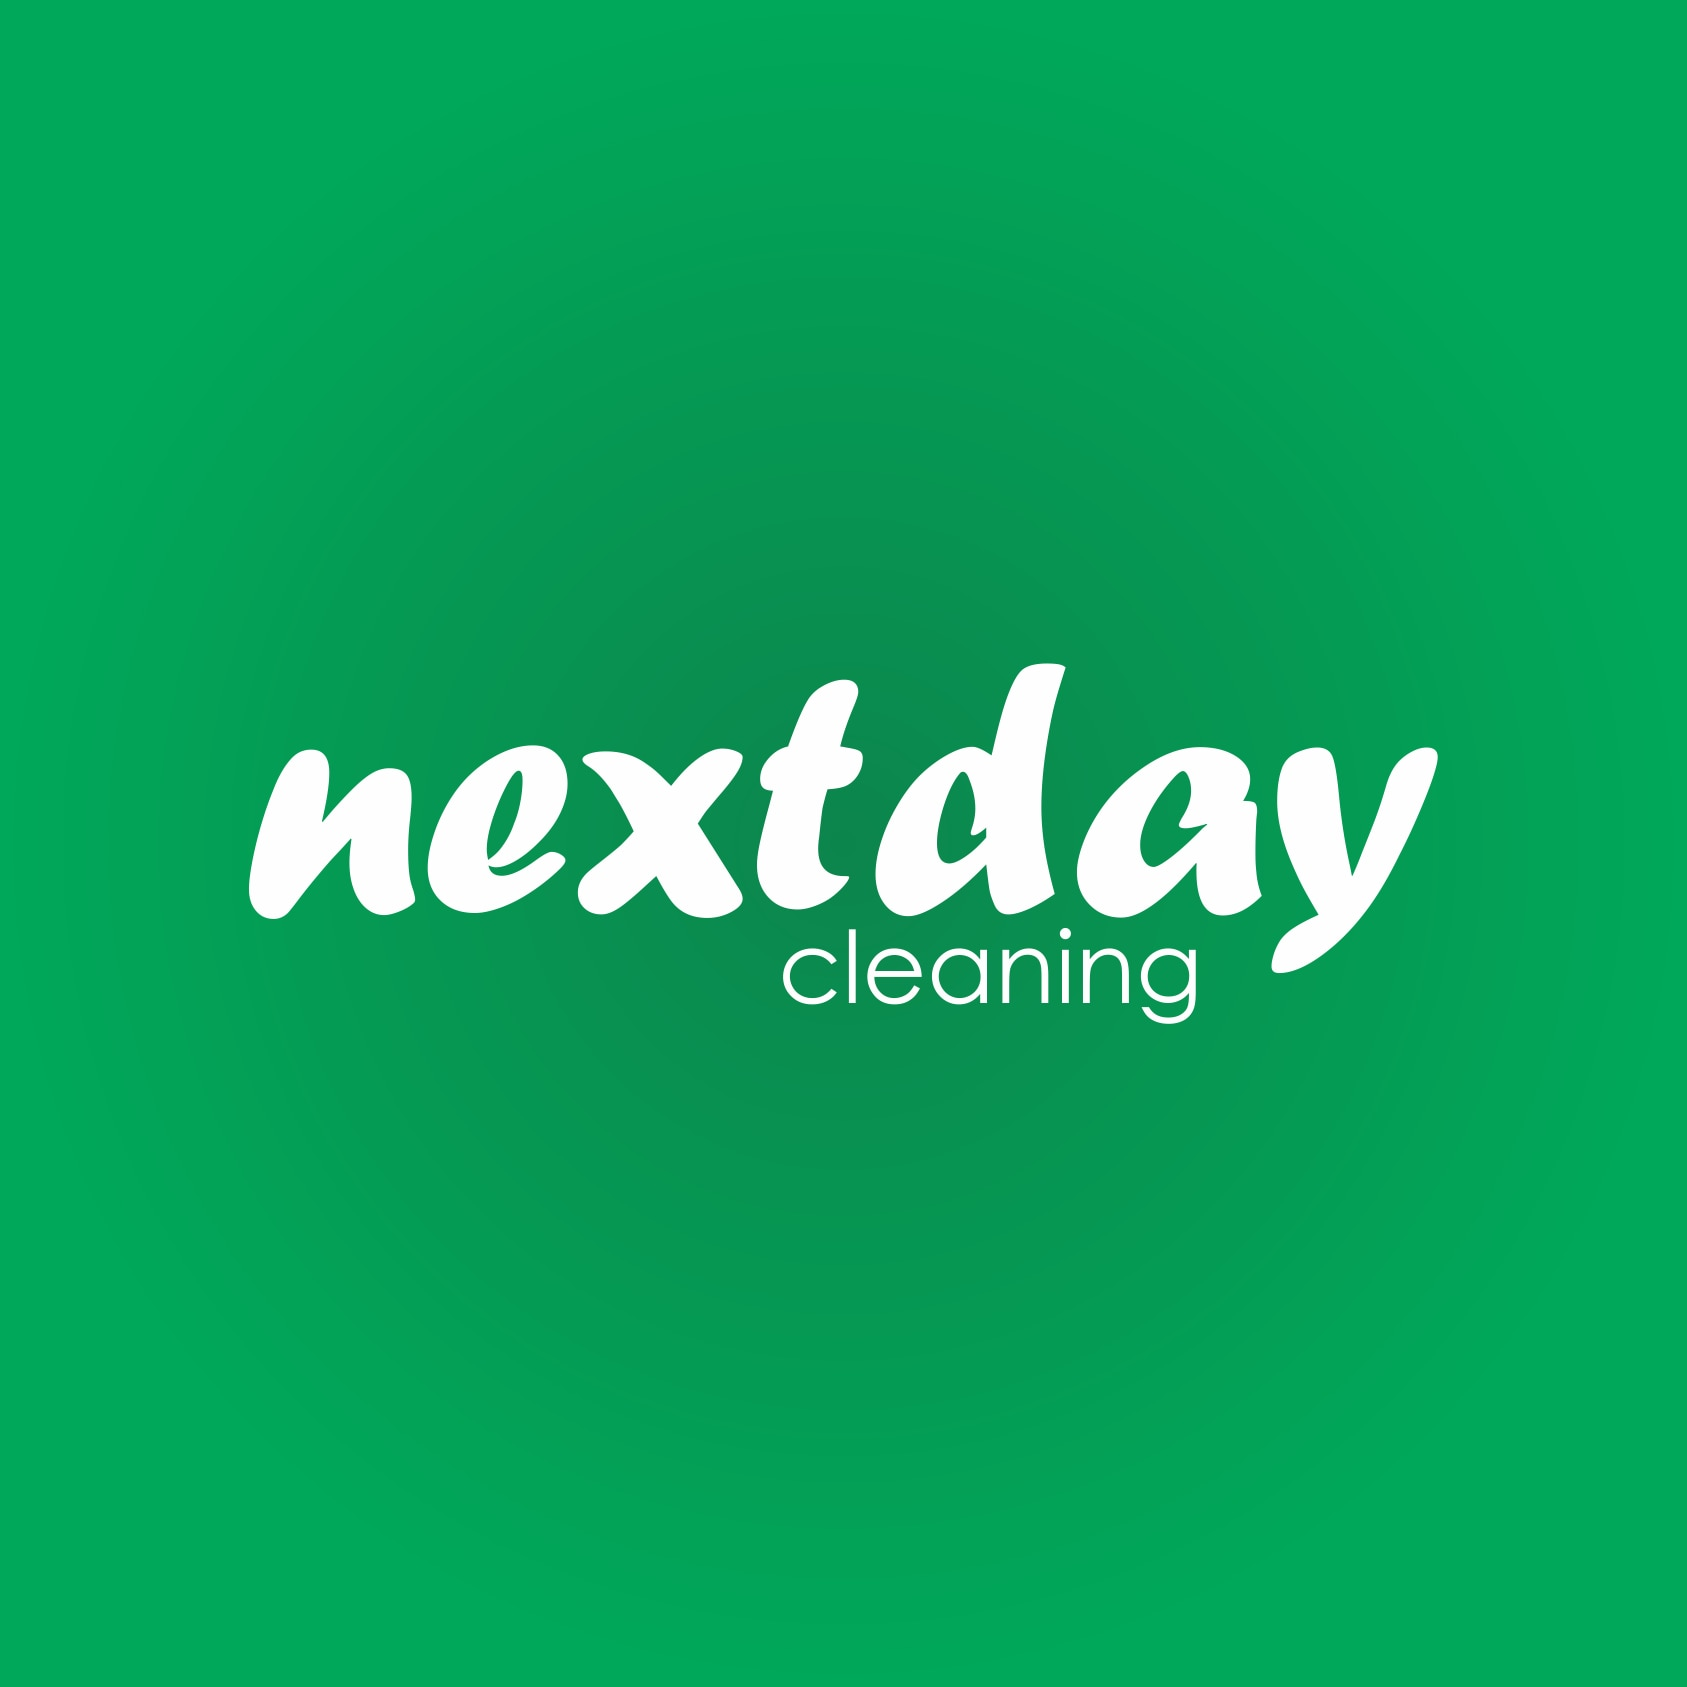 Next Day Cleaning Service logo